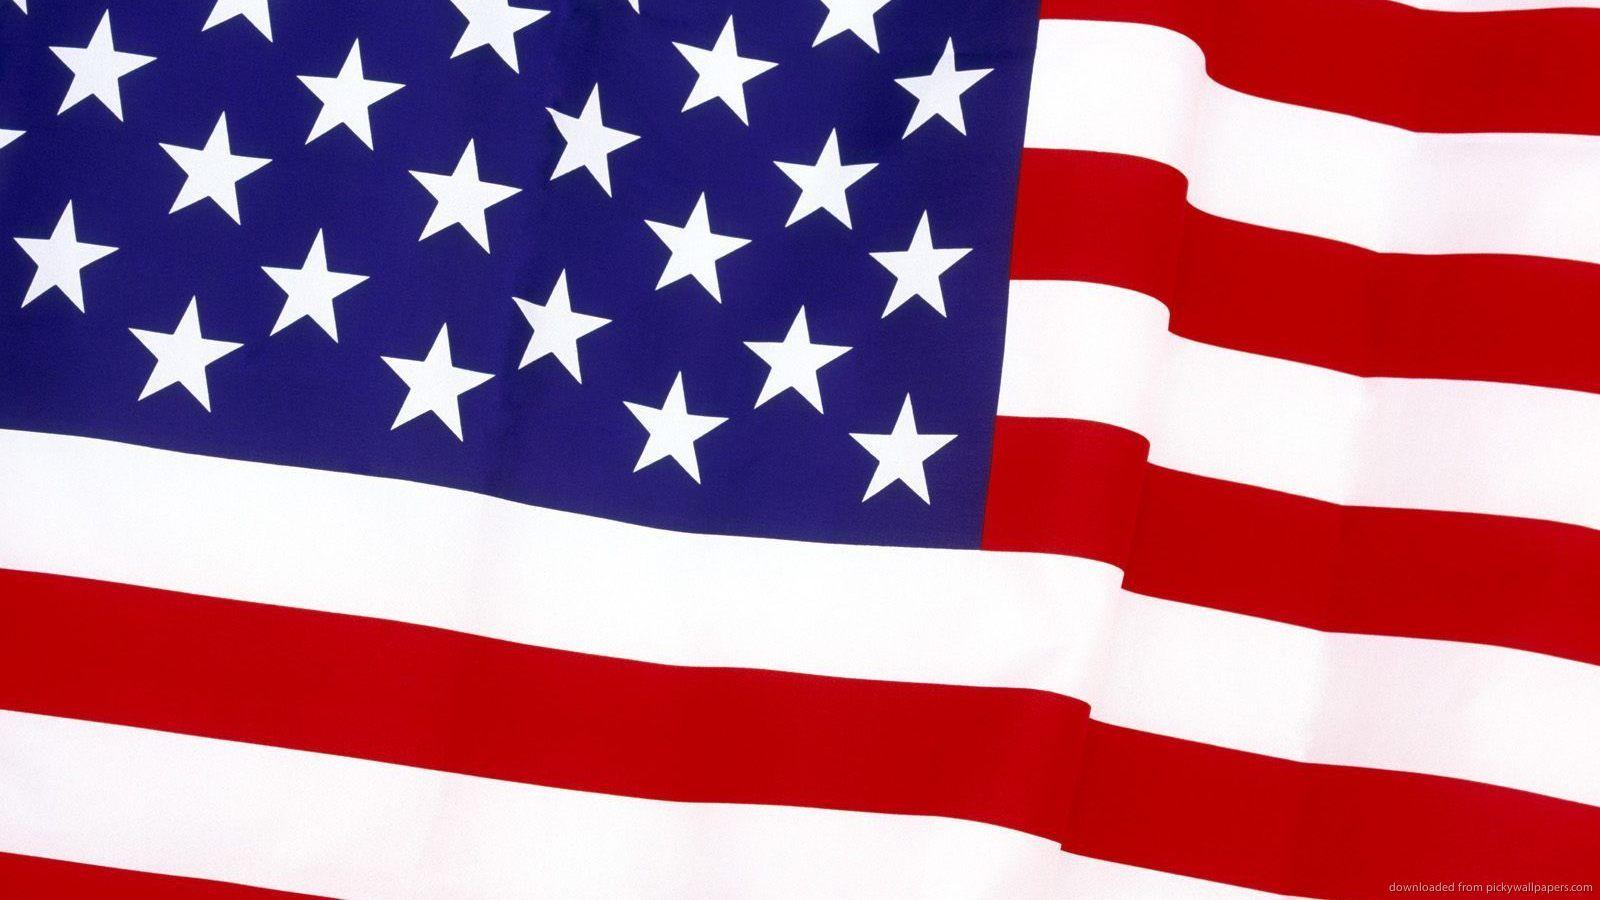 Download 1600x900 USA Flag Wallpaper